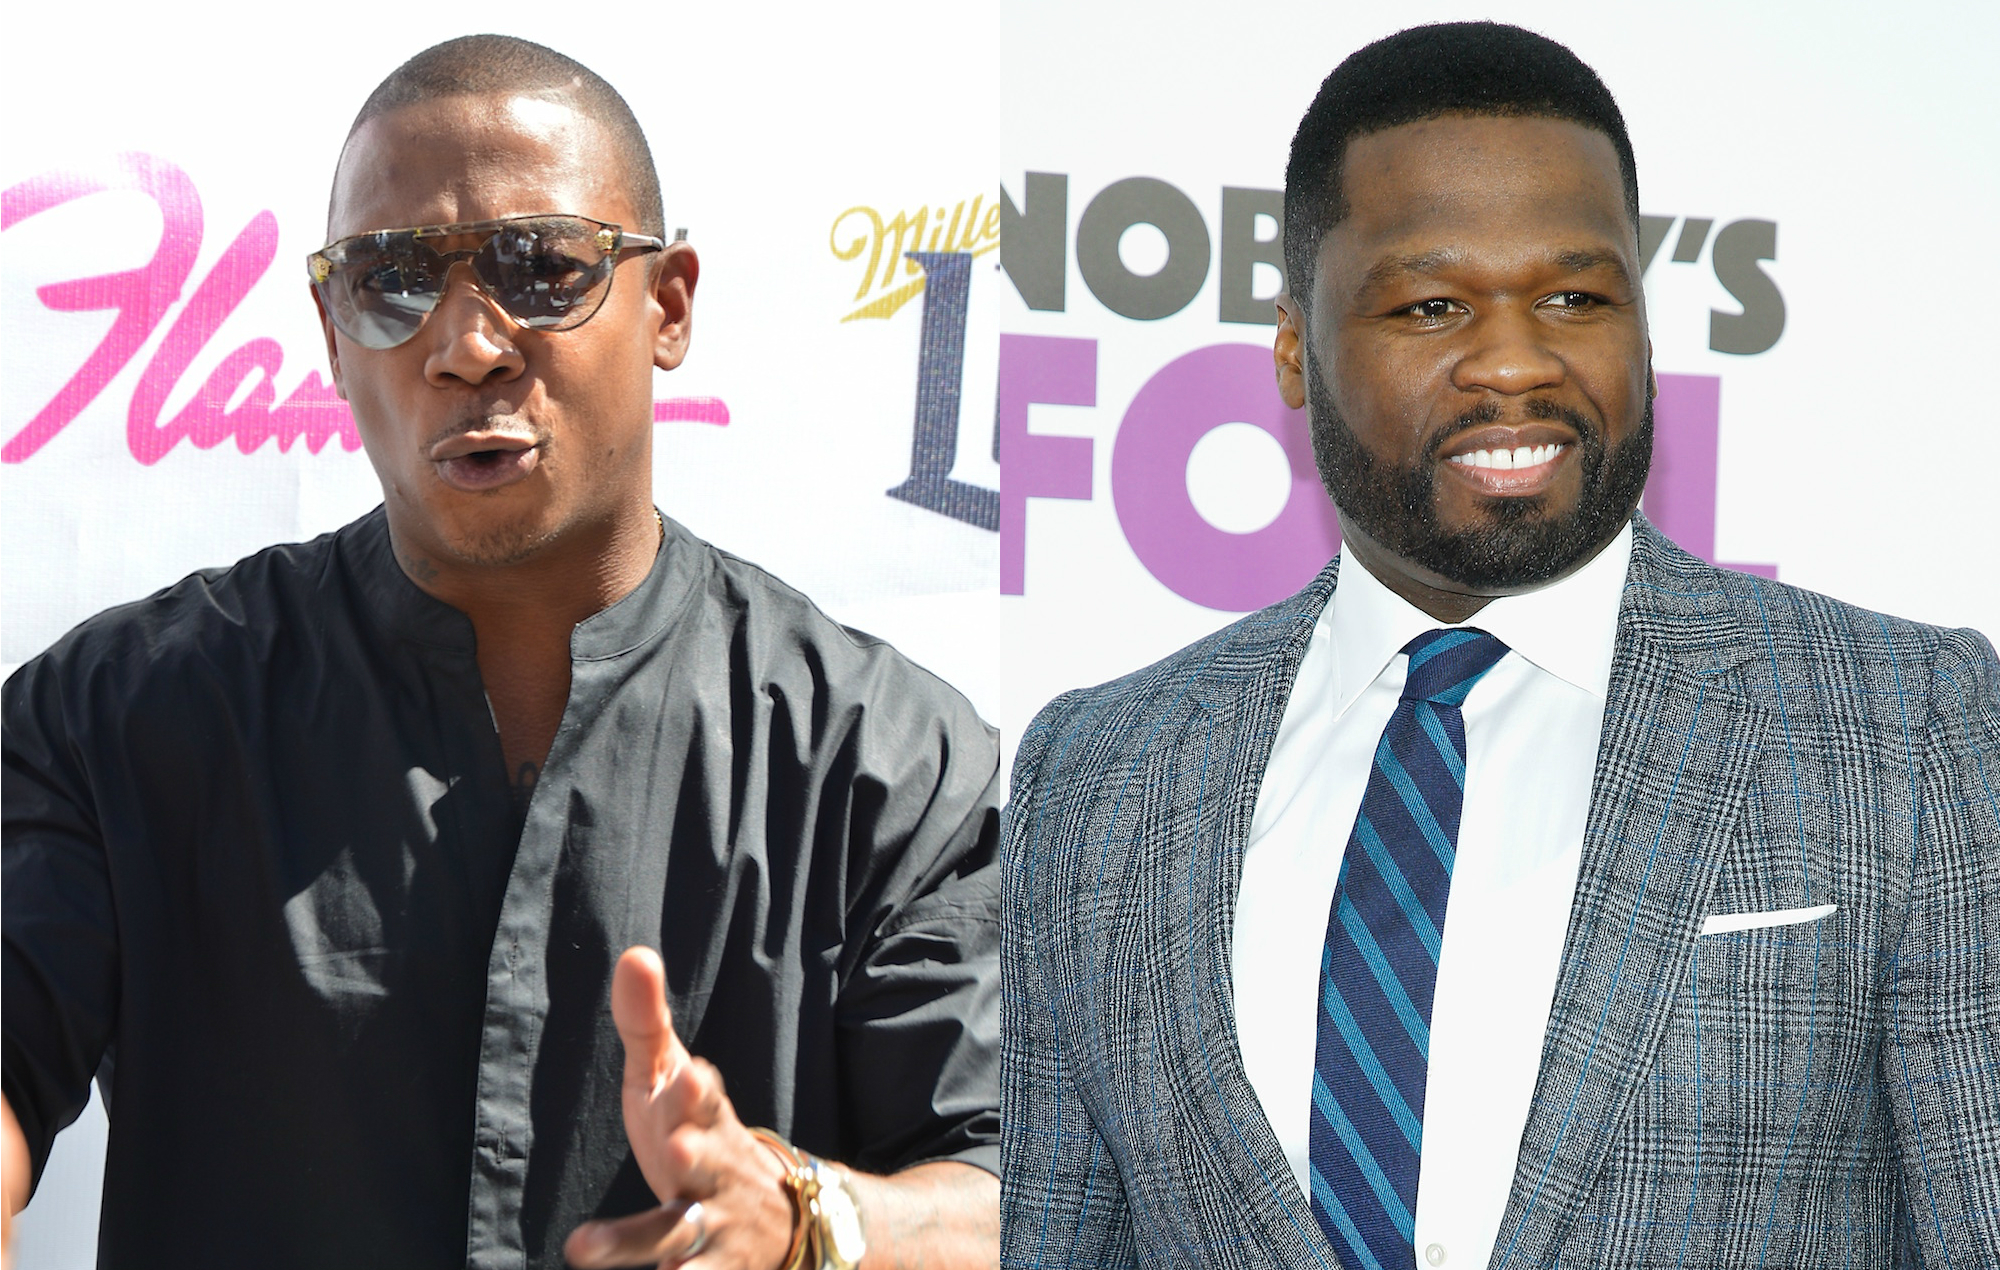 Ja Rule Challenges 50 Cent To Pull Up For A Meet And Greet As Feud